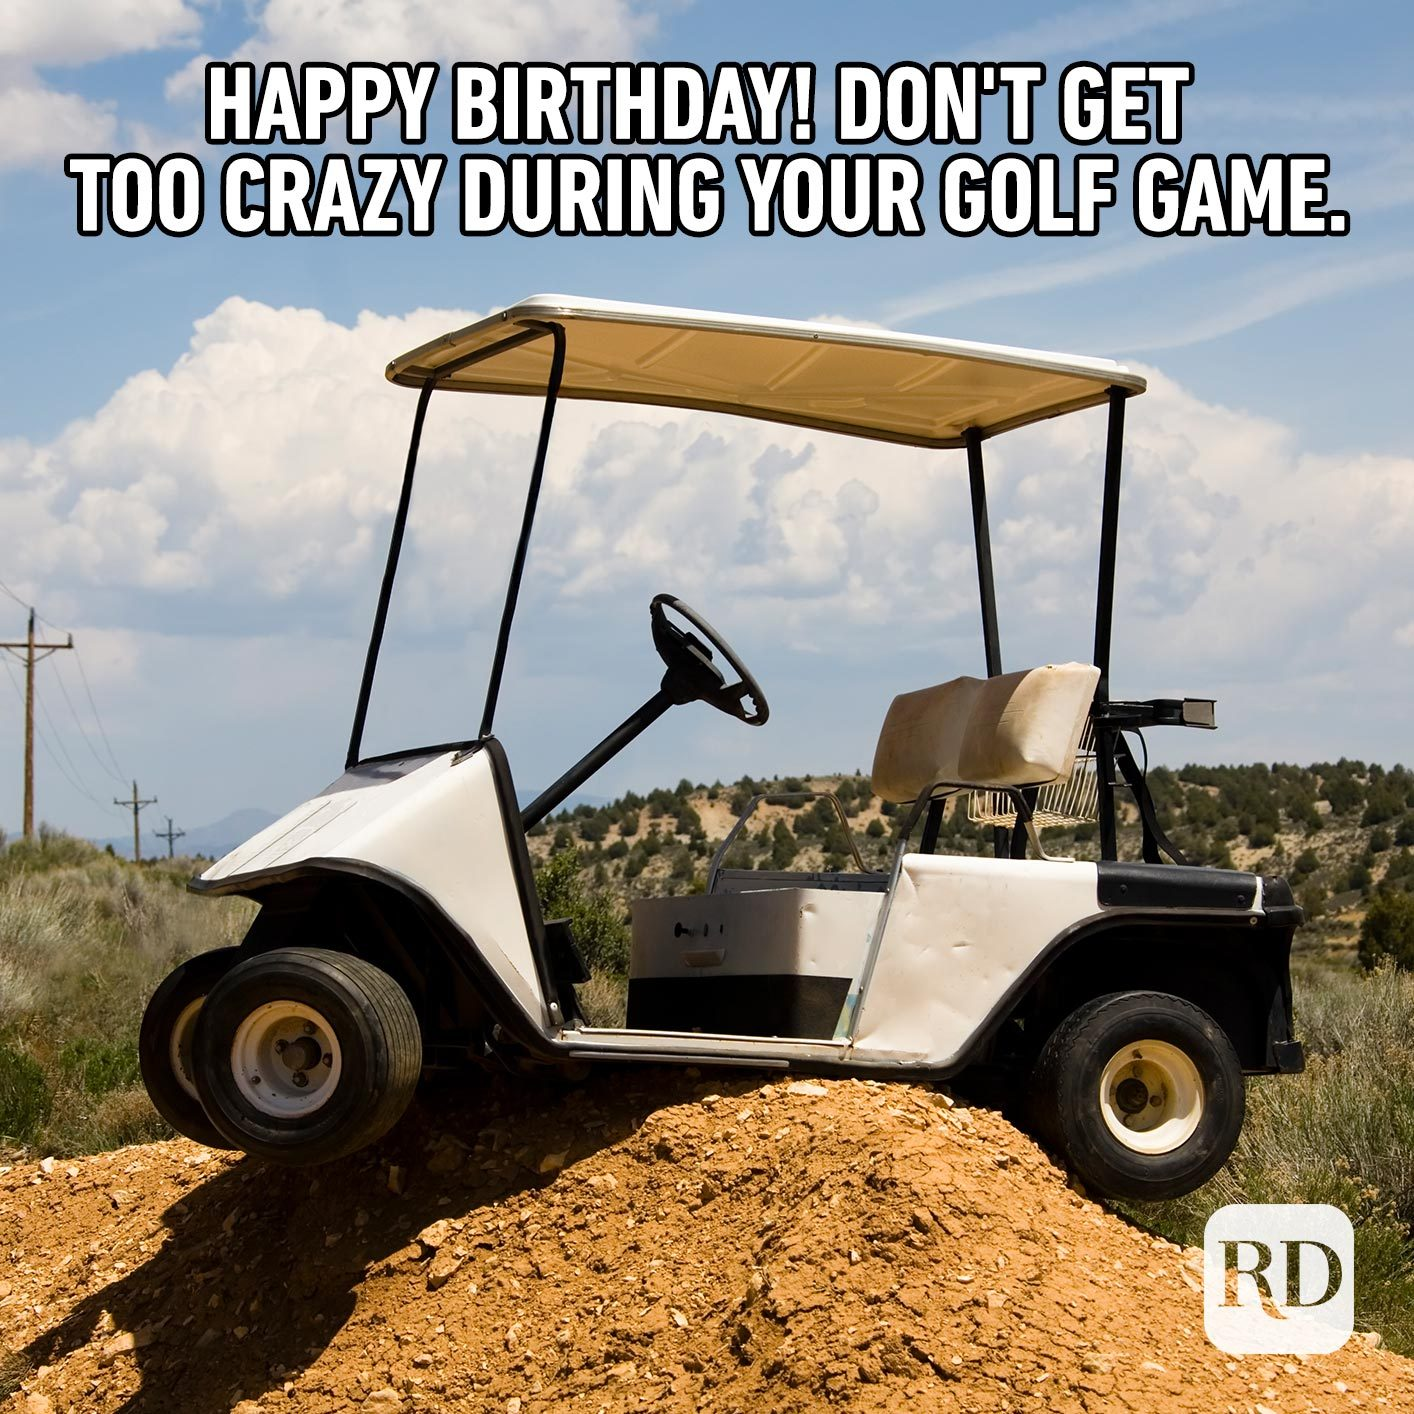 Happy Birthday! Don't get too crazy during your golf game.